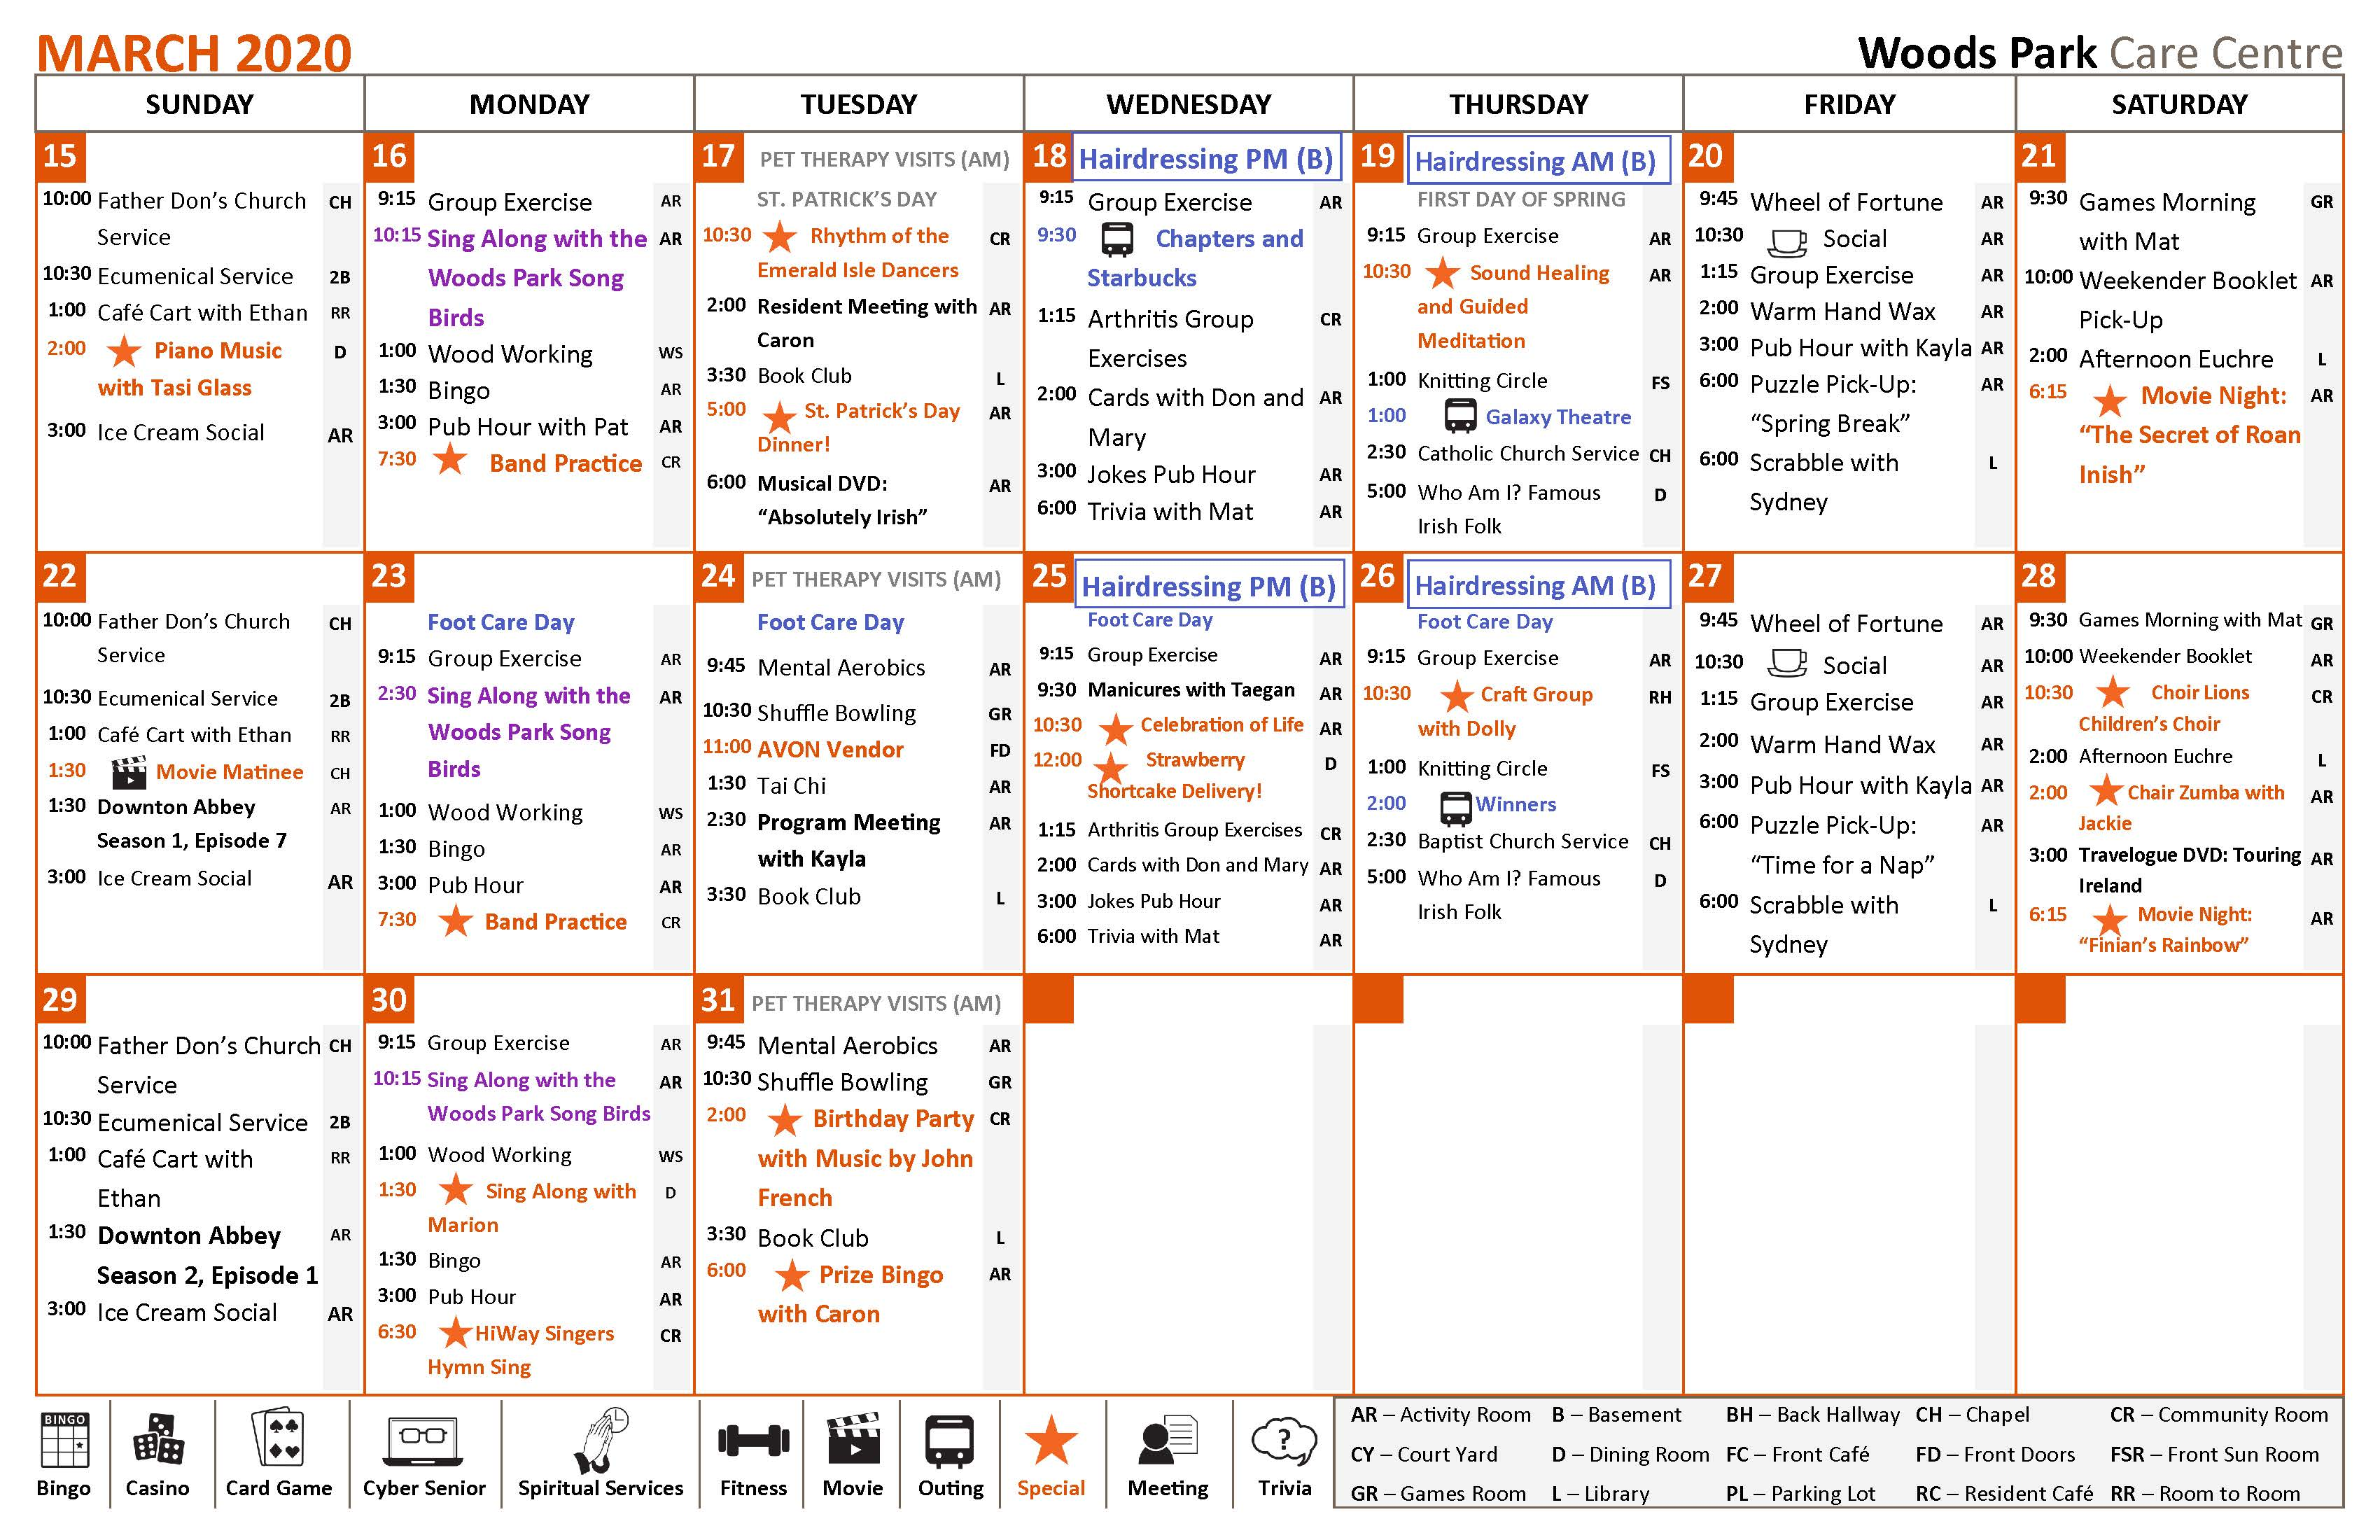 This is an image showing our monthly calendar of activities. If you have a question about our daily activities on a certain day, or about one of our programs, kindly give us a call at 705-739-6881. We would be happy to assist you in any way we can.